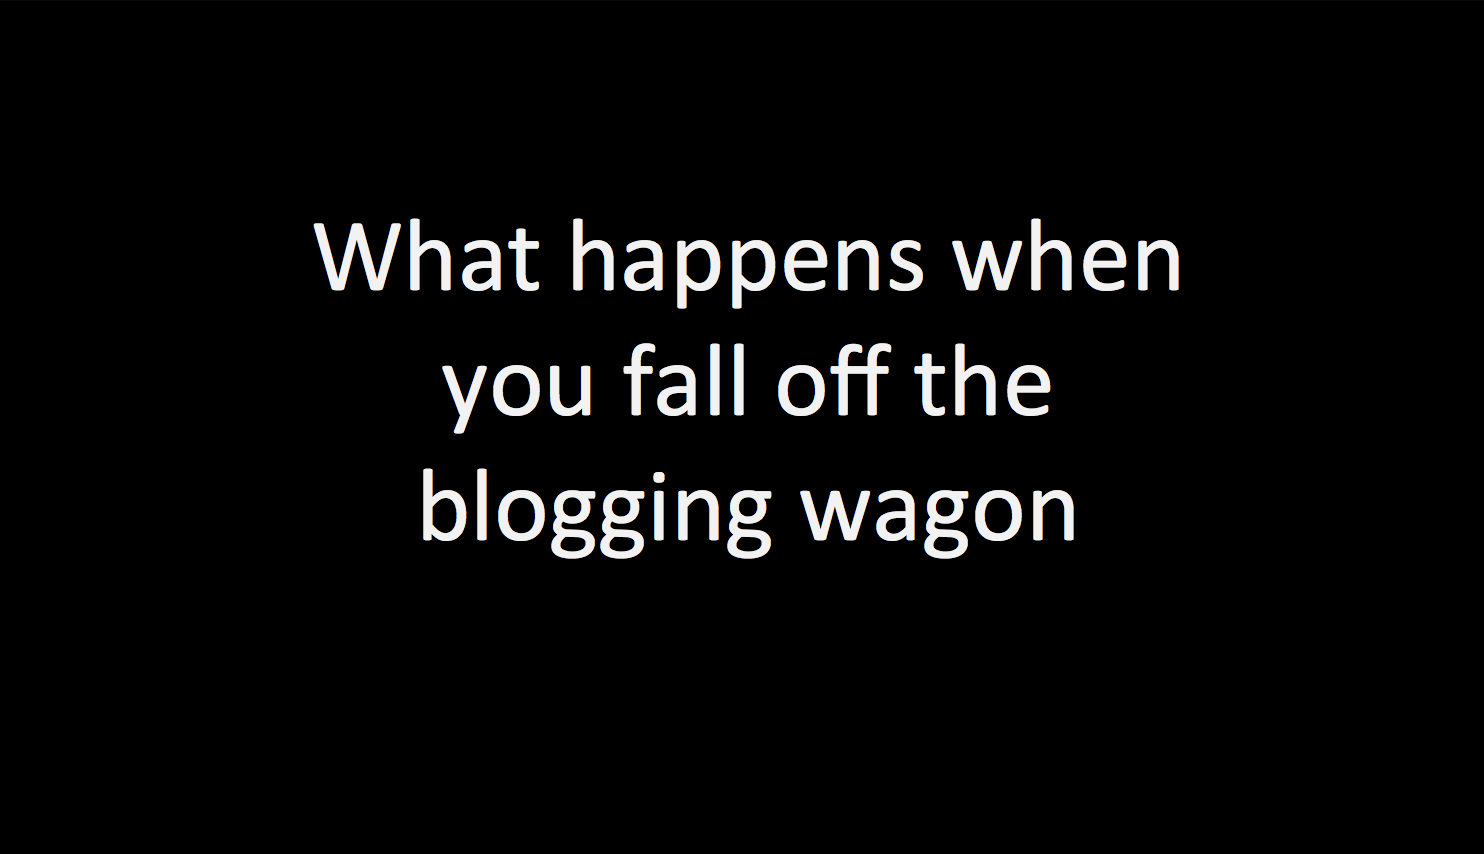 What happens when you fall off the blogging wagon